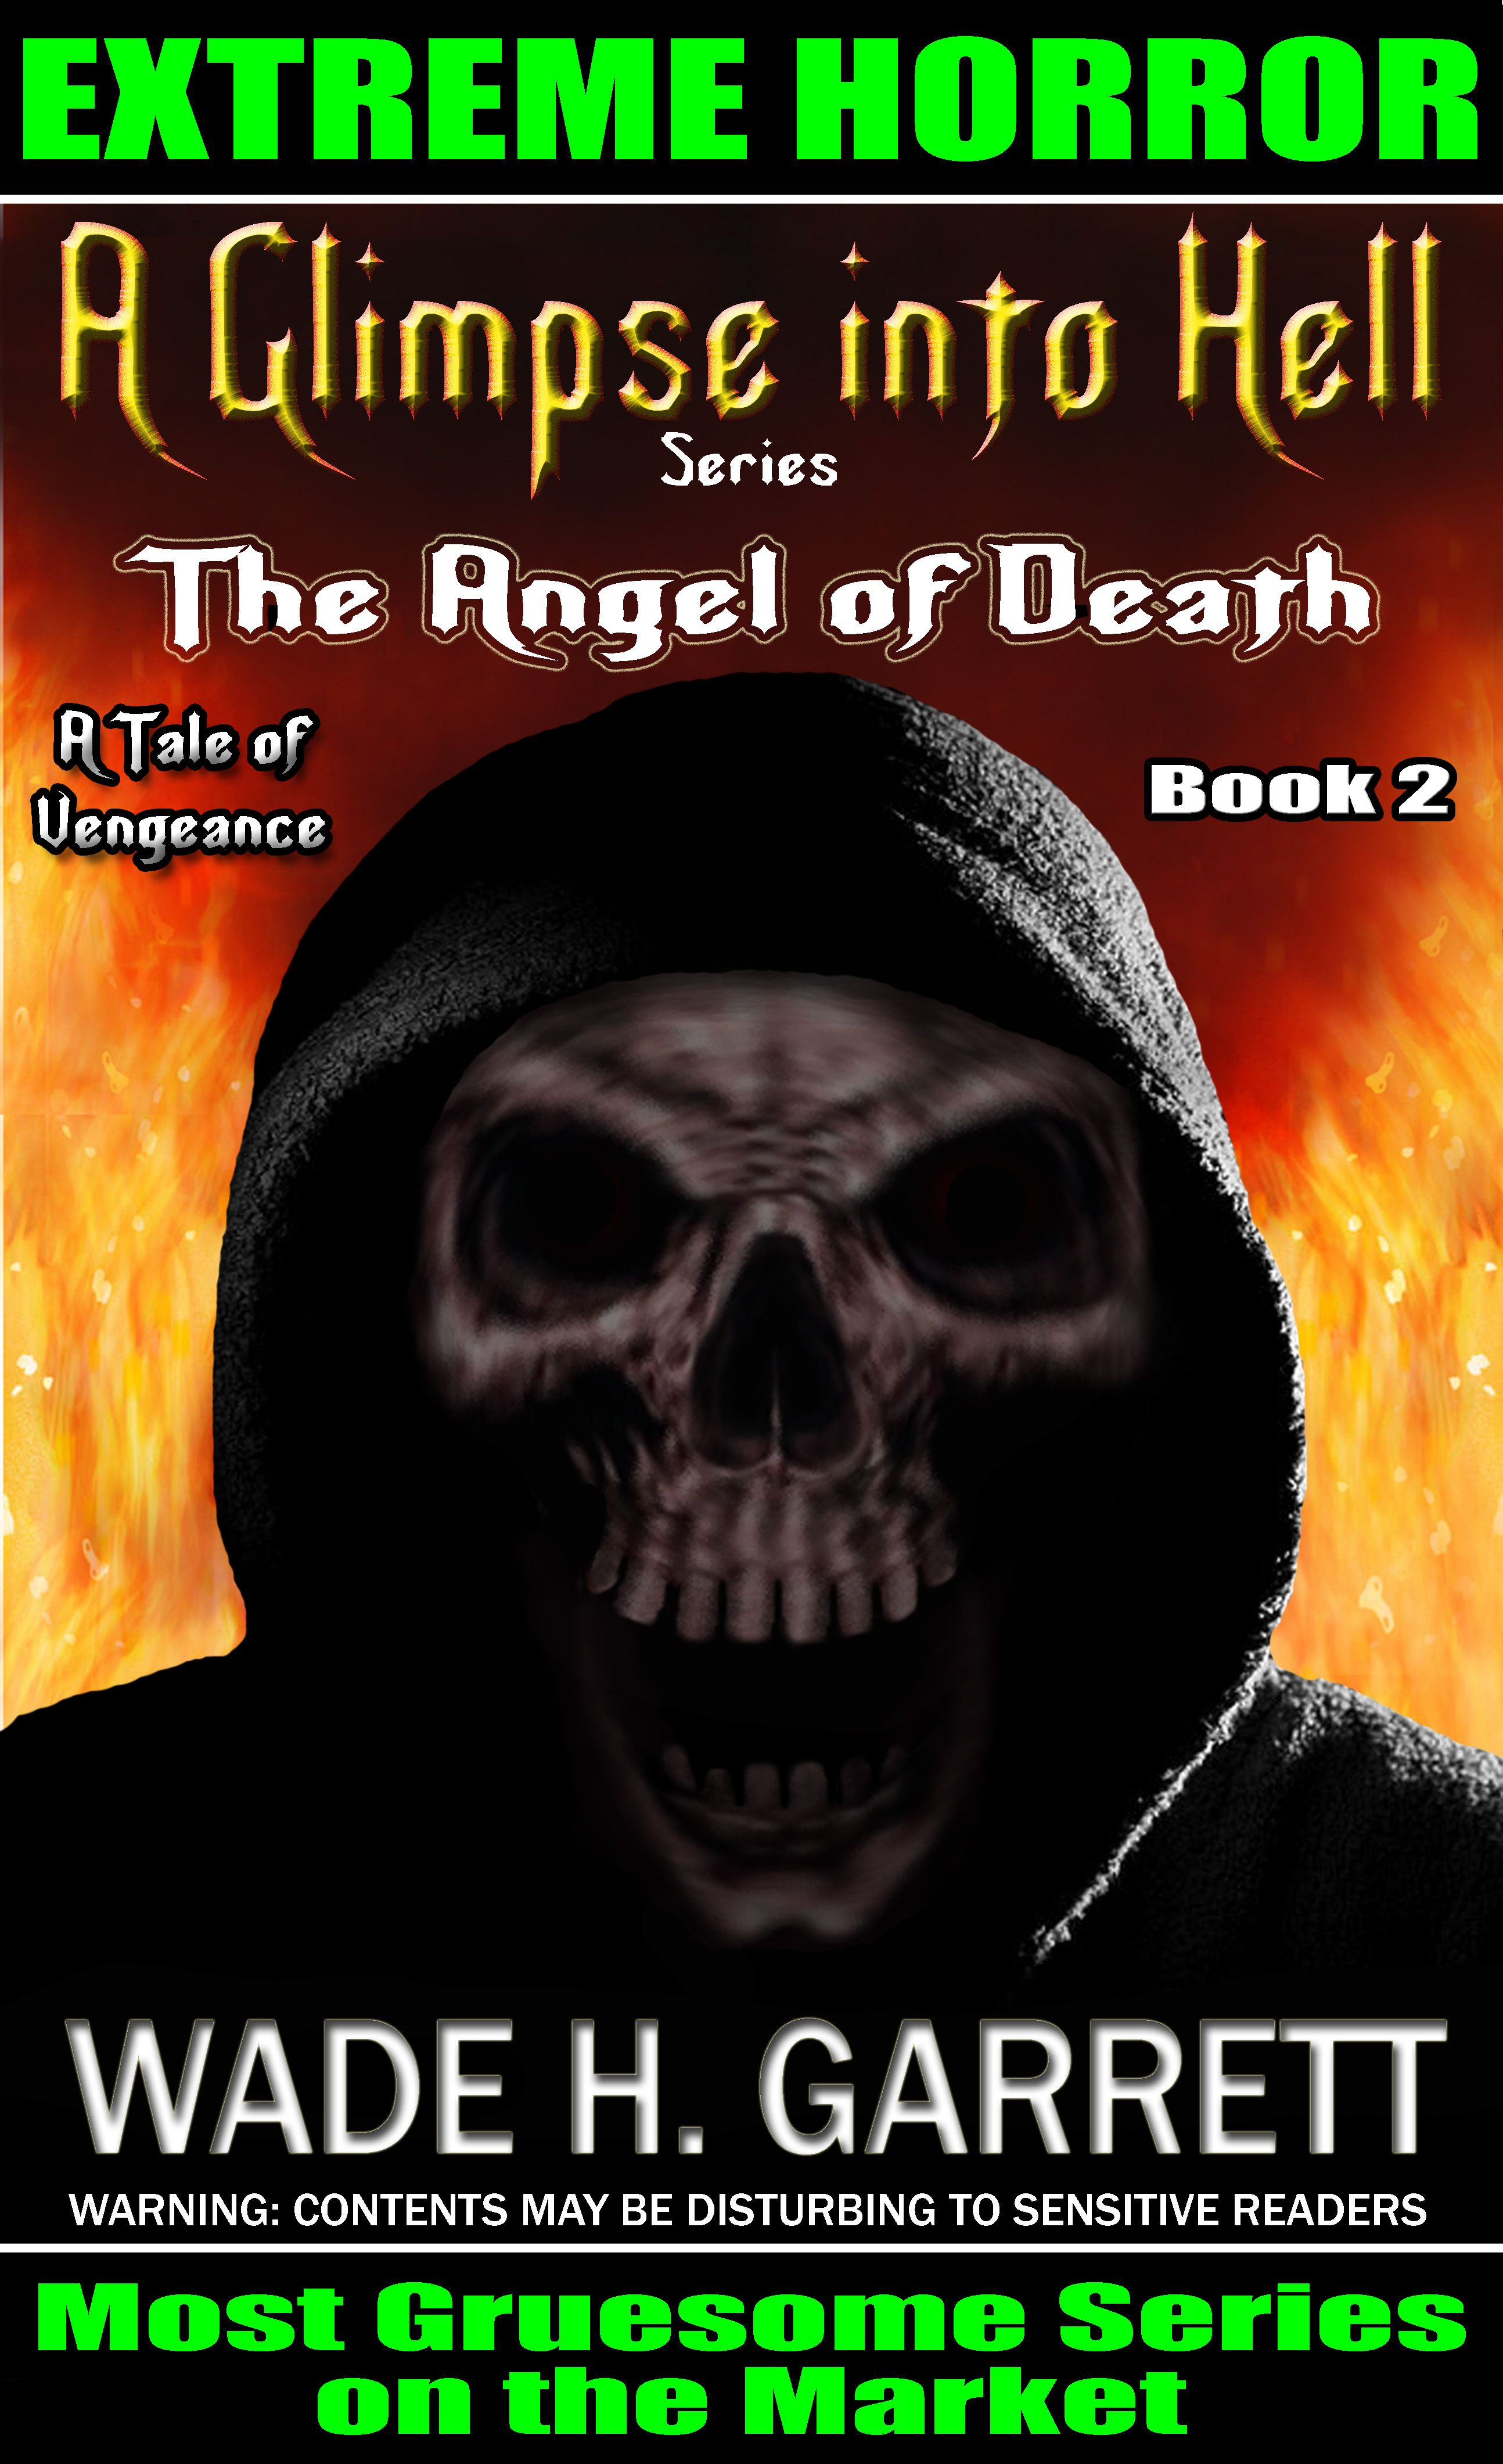 The Angel of Death book